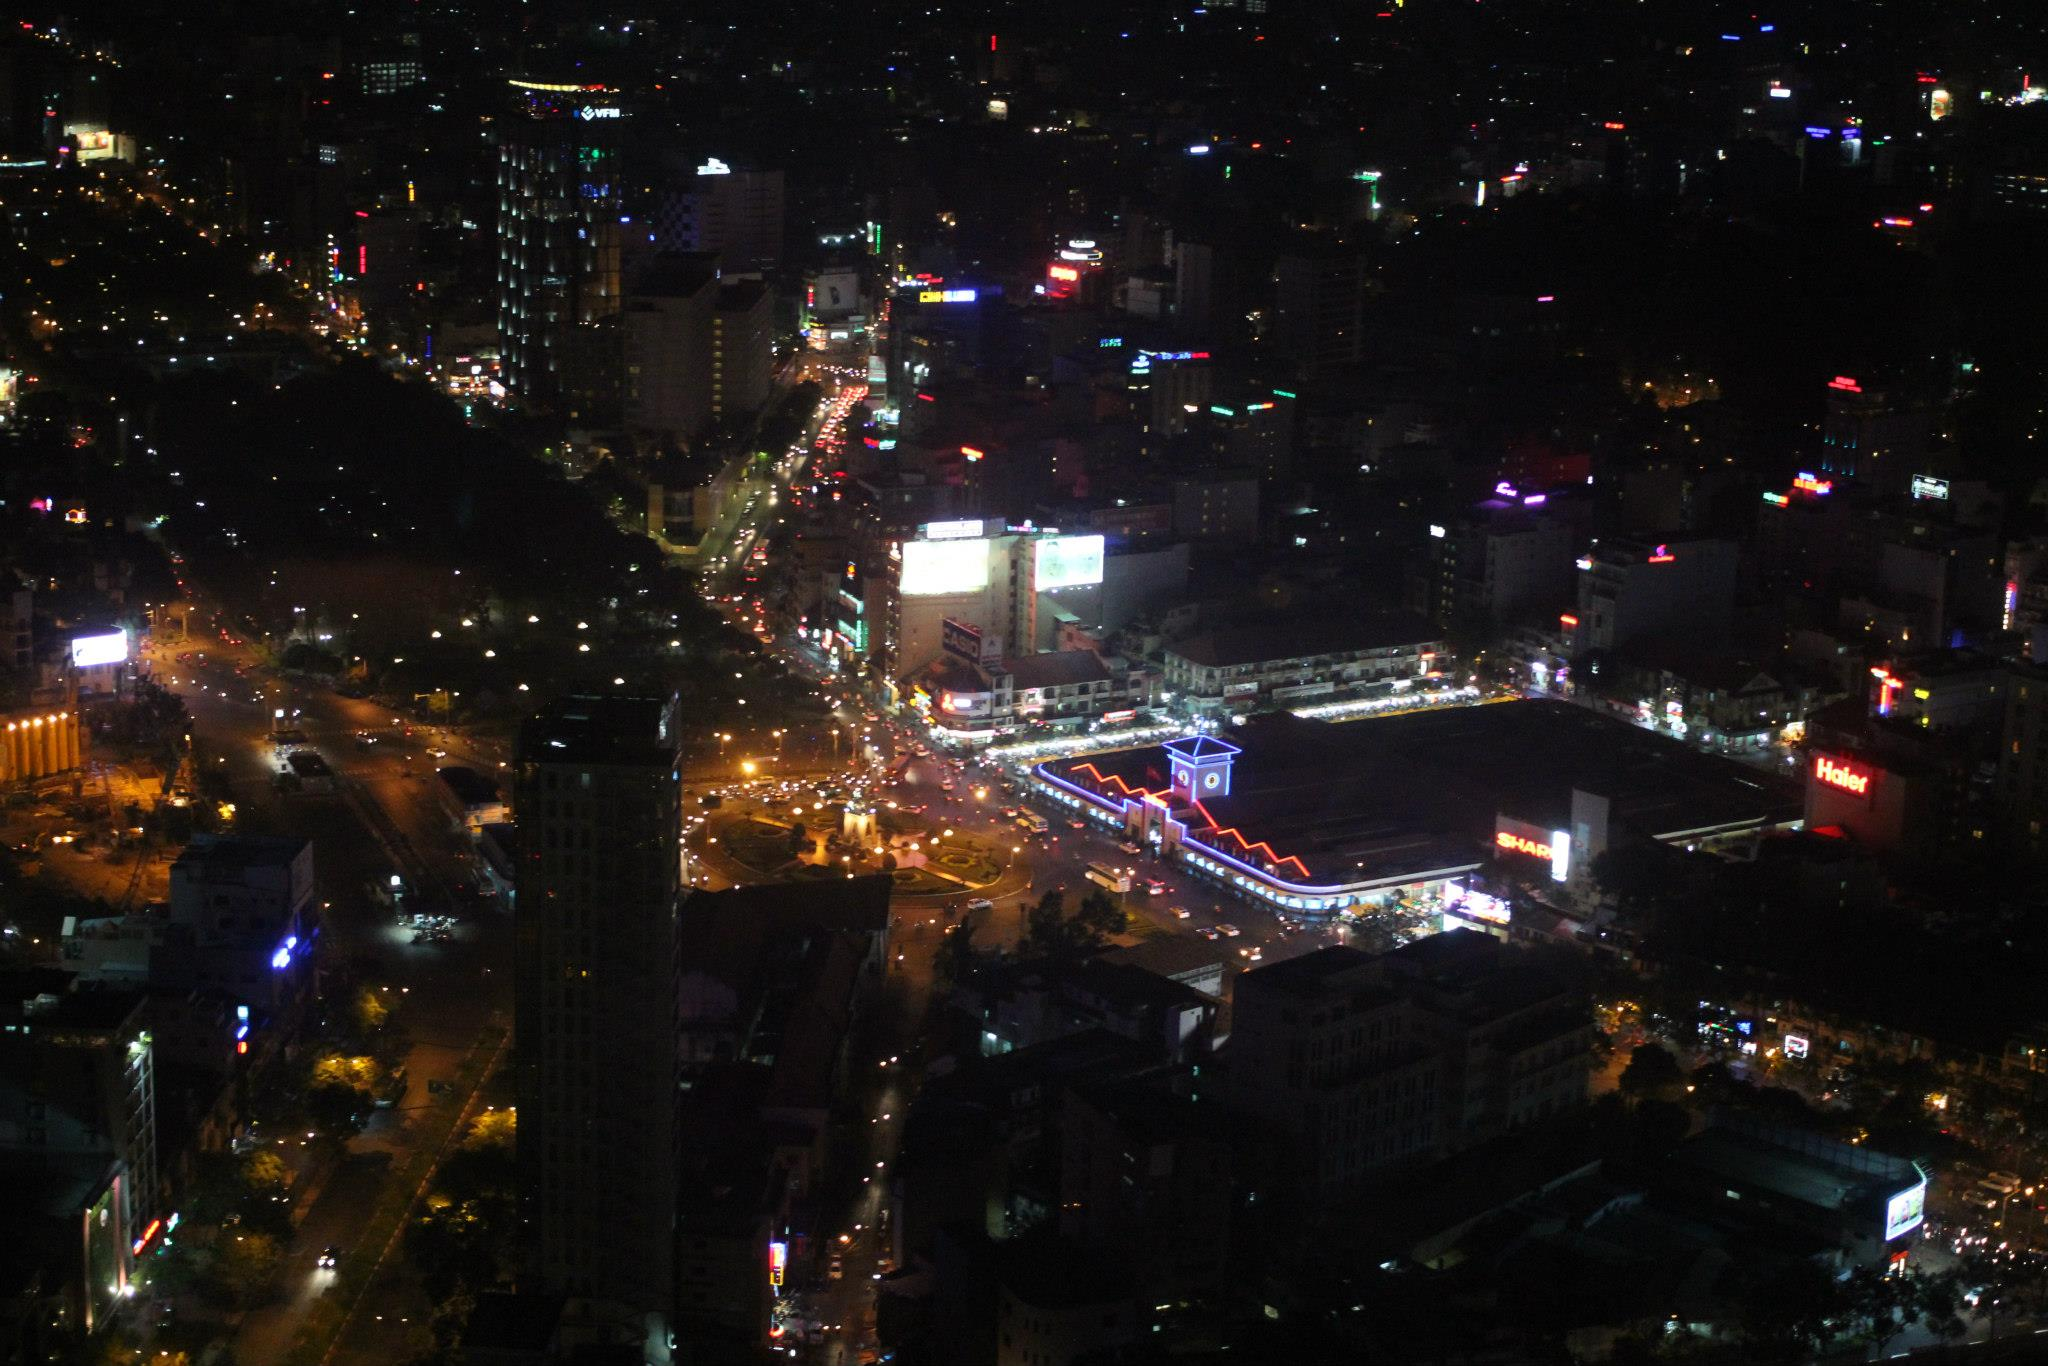 From the 52nd floor of the Bitexco Building, tallest in HCMC